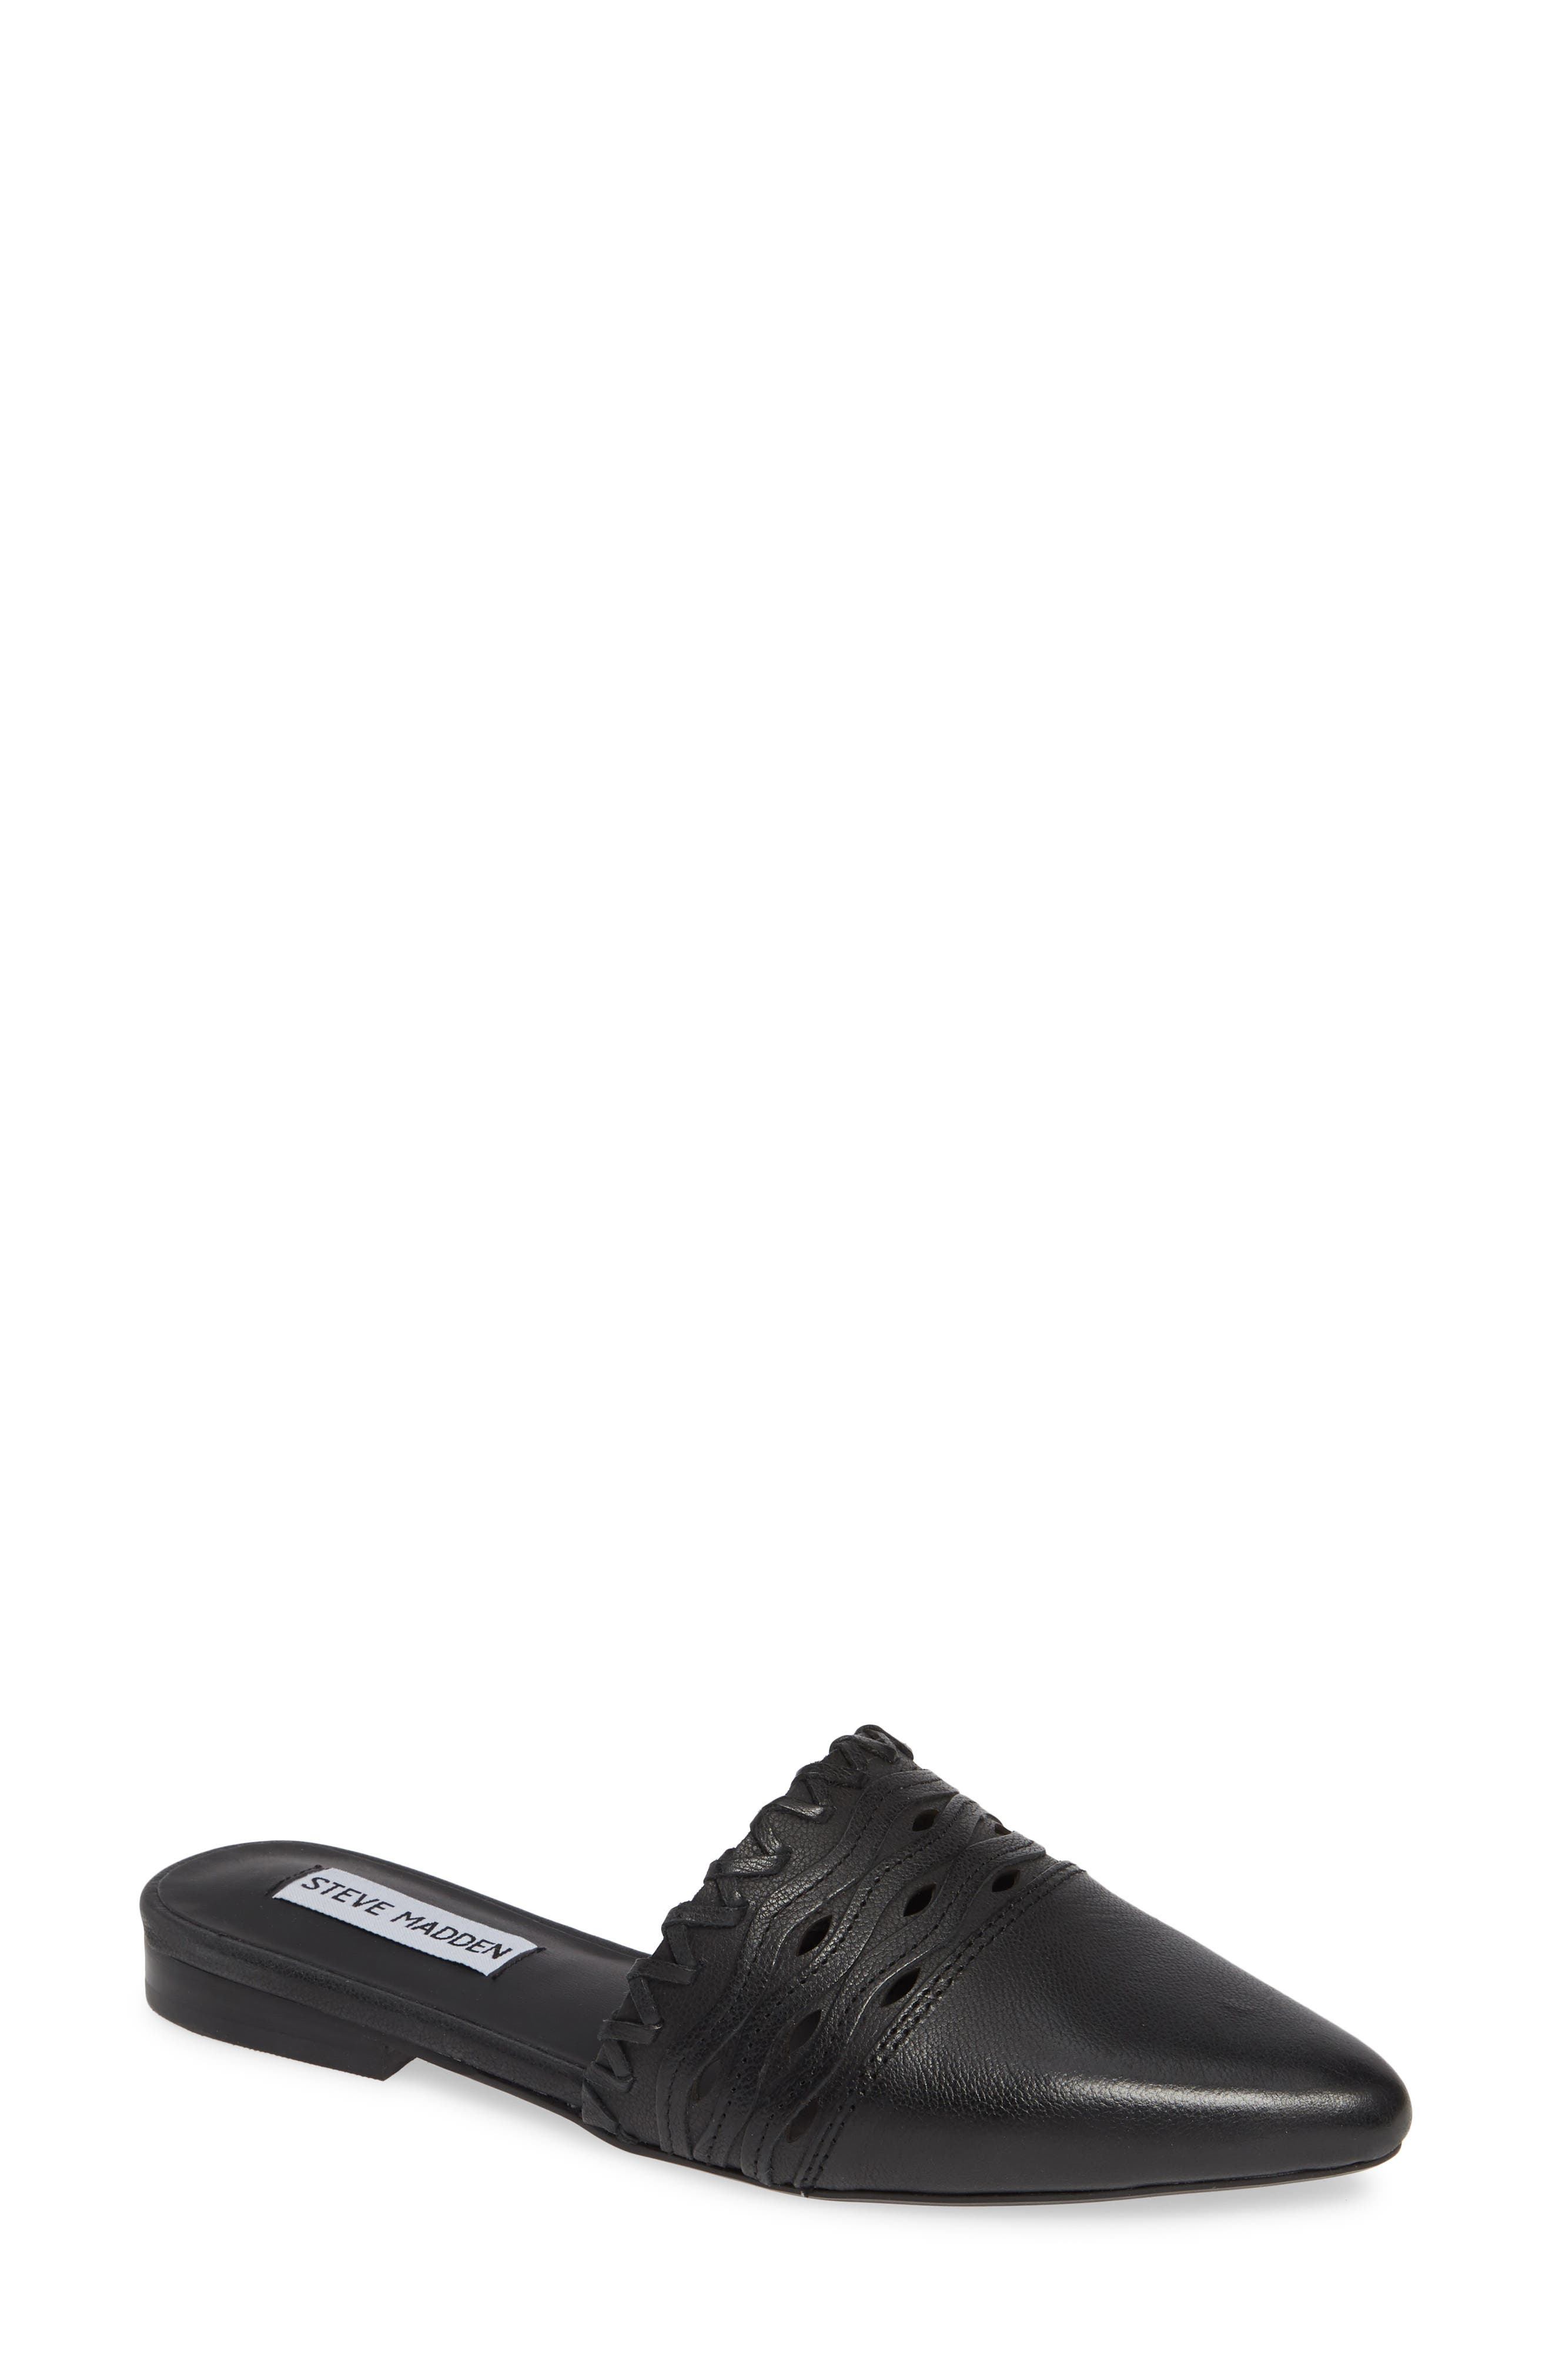 STEVE MADDEN Timmy Mule, Main, color, BLACK LEATHER